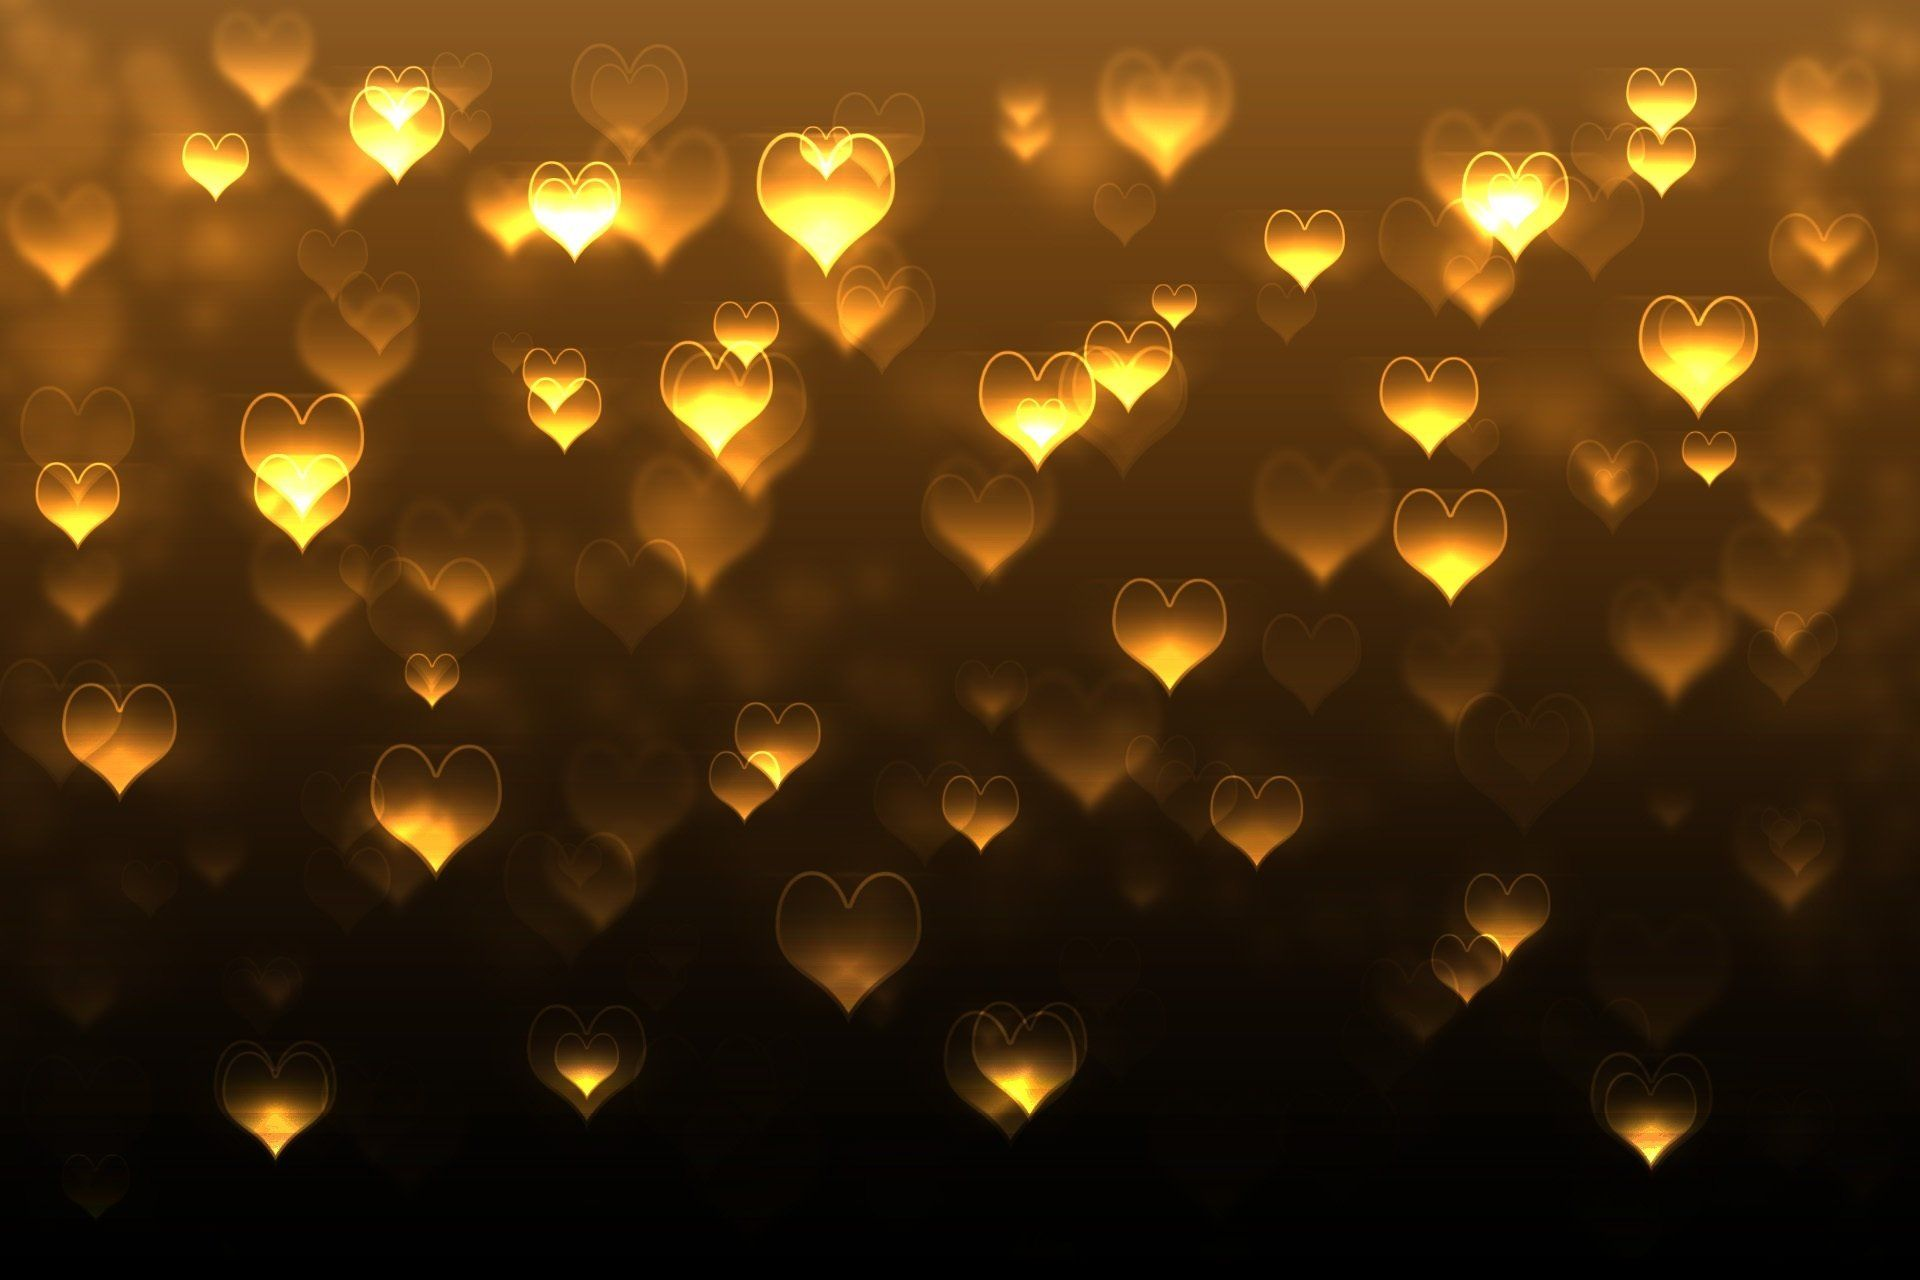 Gold Love Wallpapers Top Free Gold Love Backgrounds